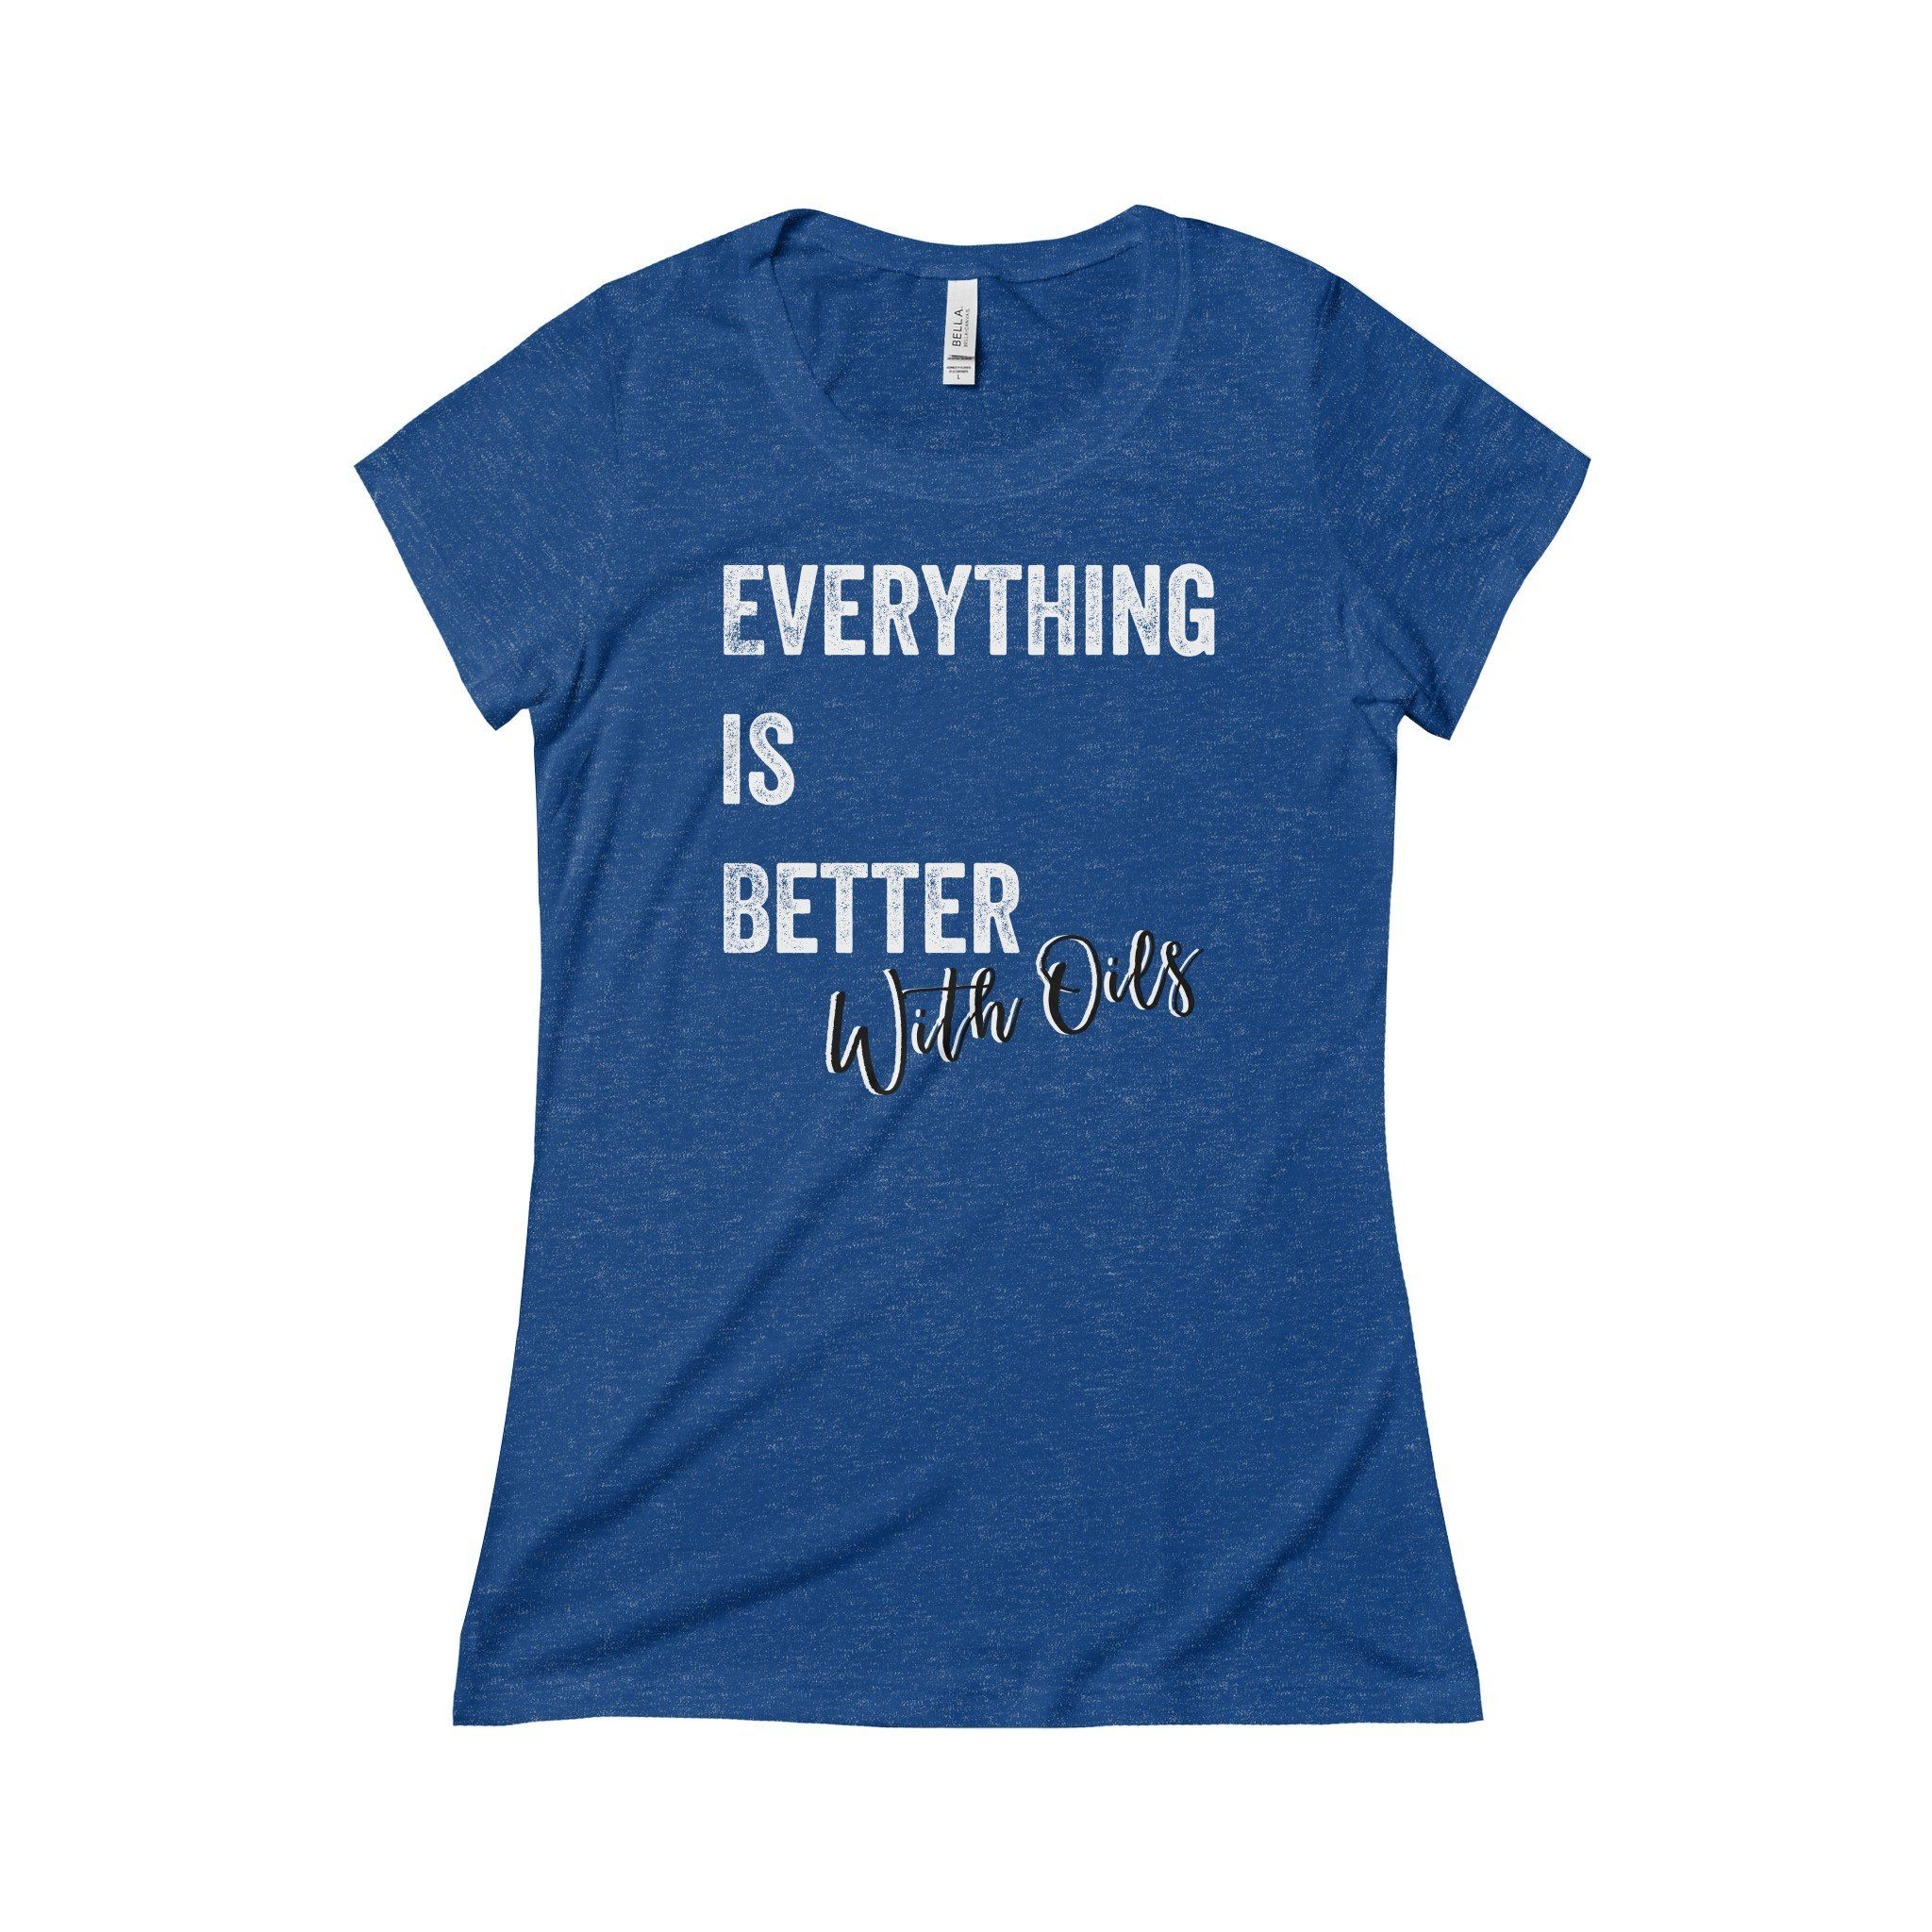 'Everything Is Better With Oils' Women's Triblend Short Sleeve Tee